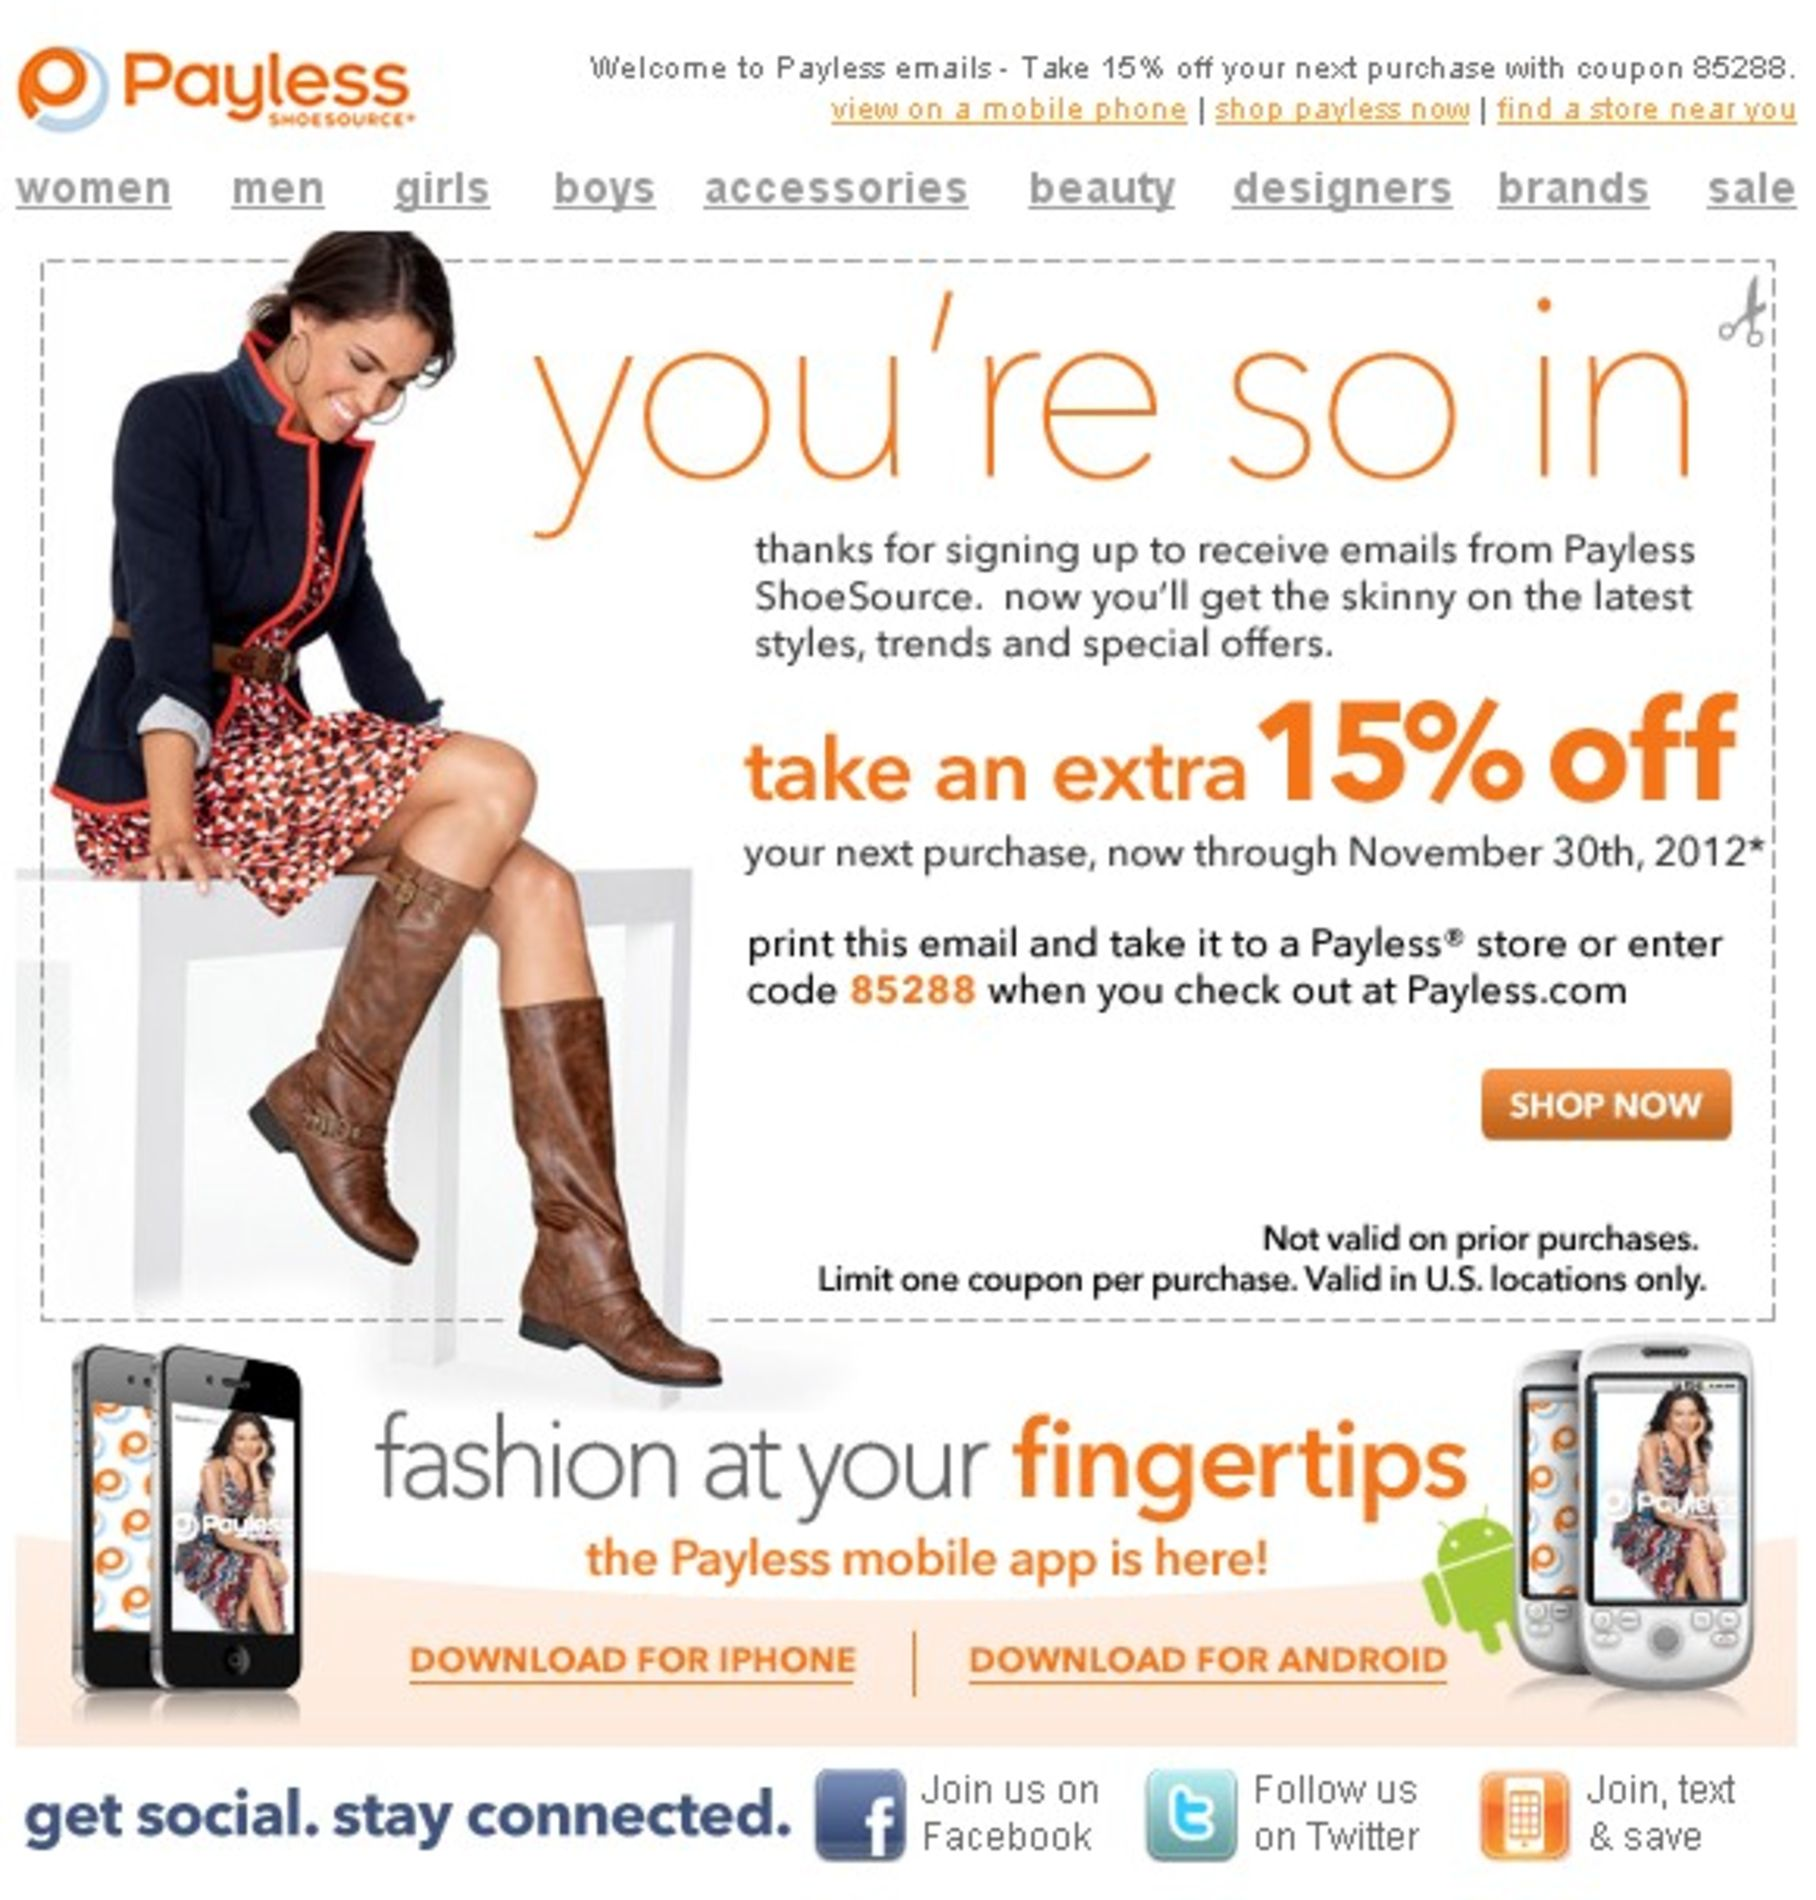 Payless shoe source coupon | Payless Shoe Source | Pinterest